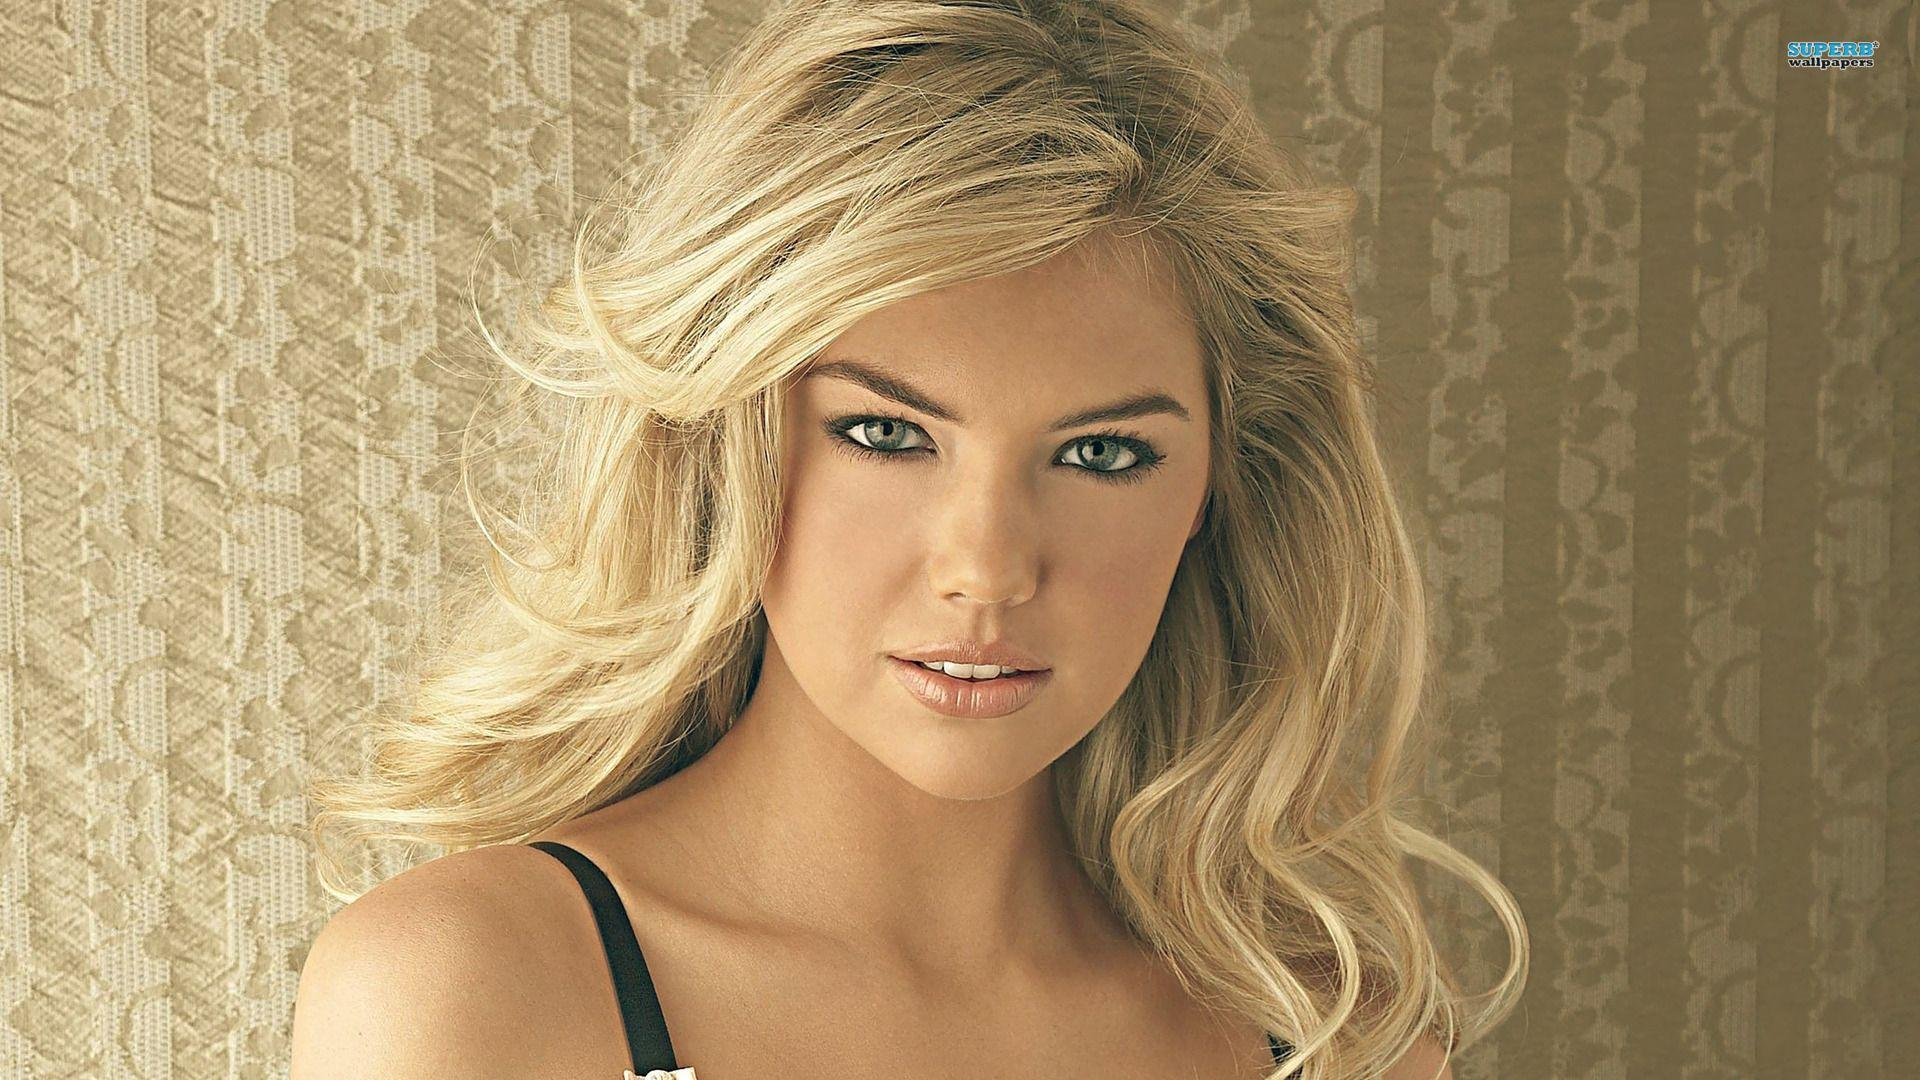 kate upton wallpapers with - photo #9